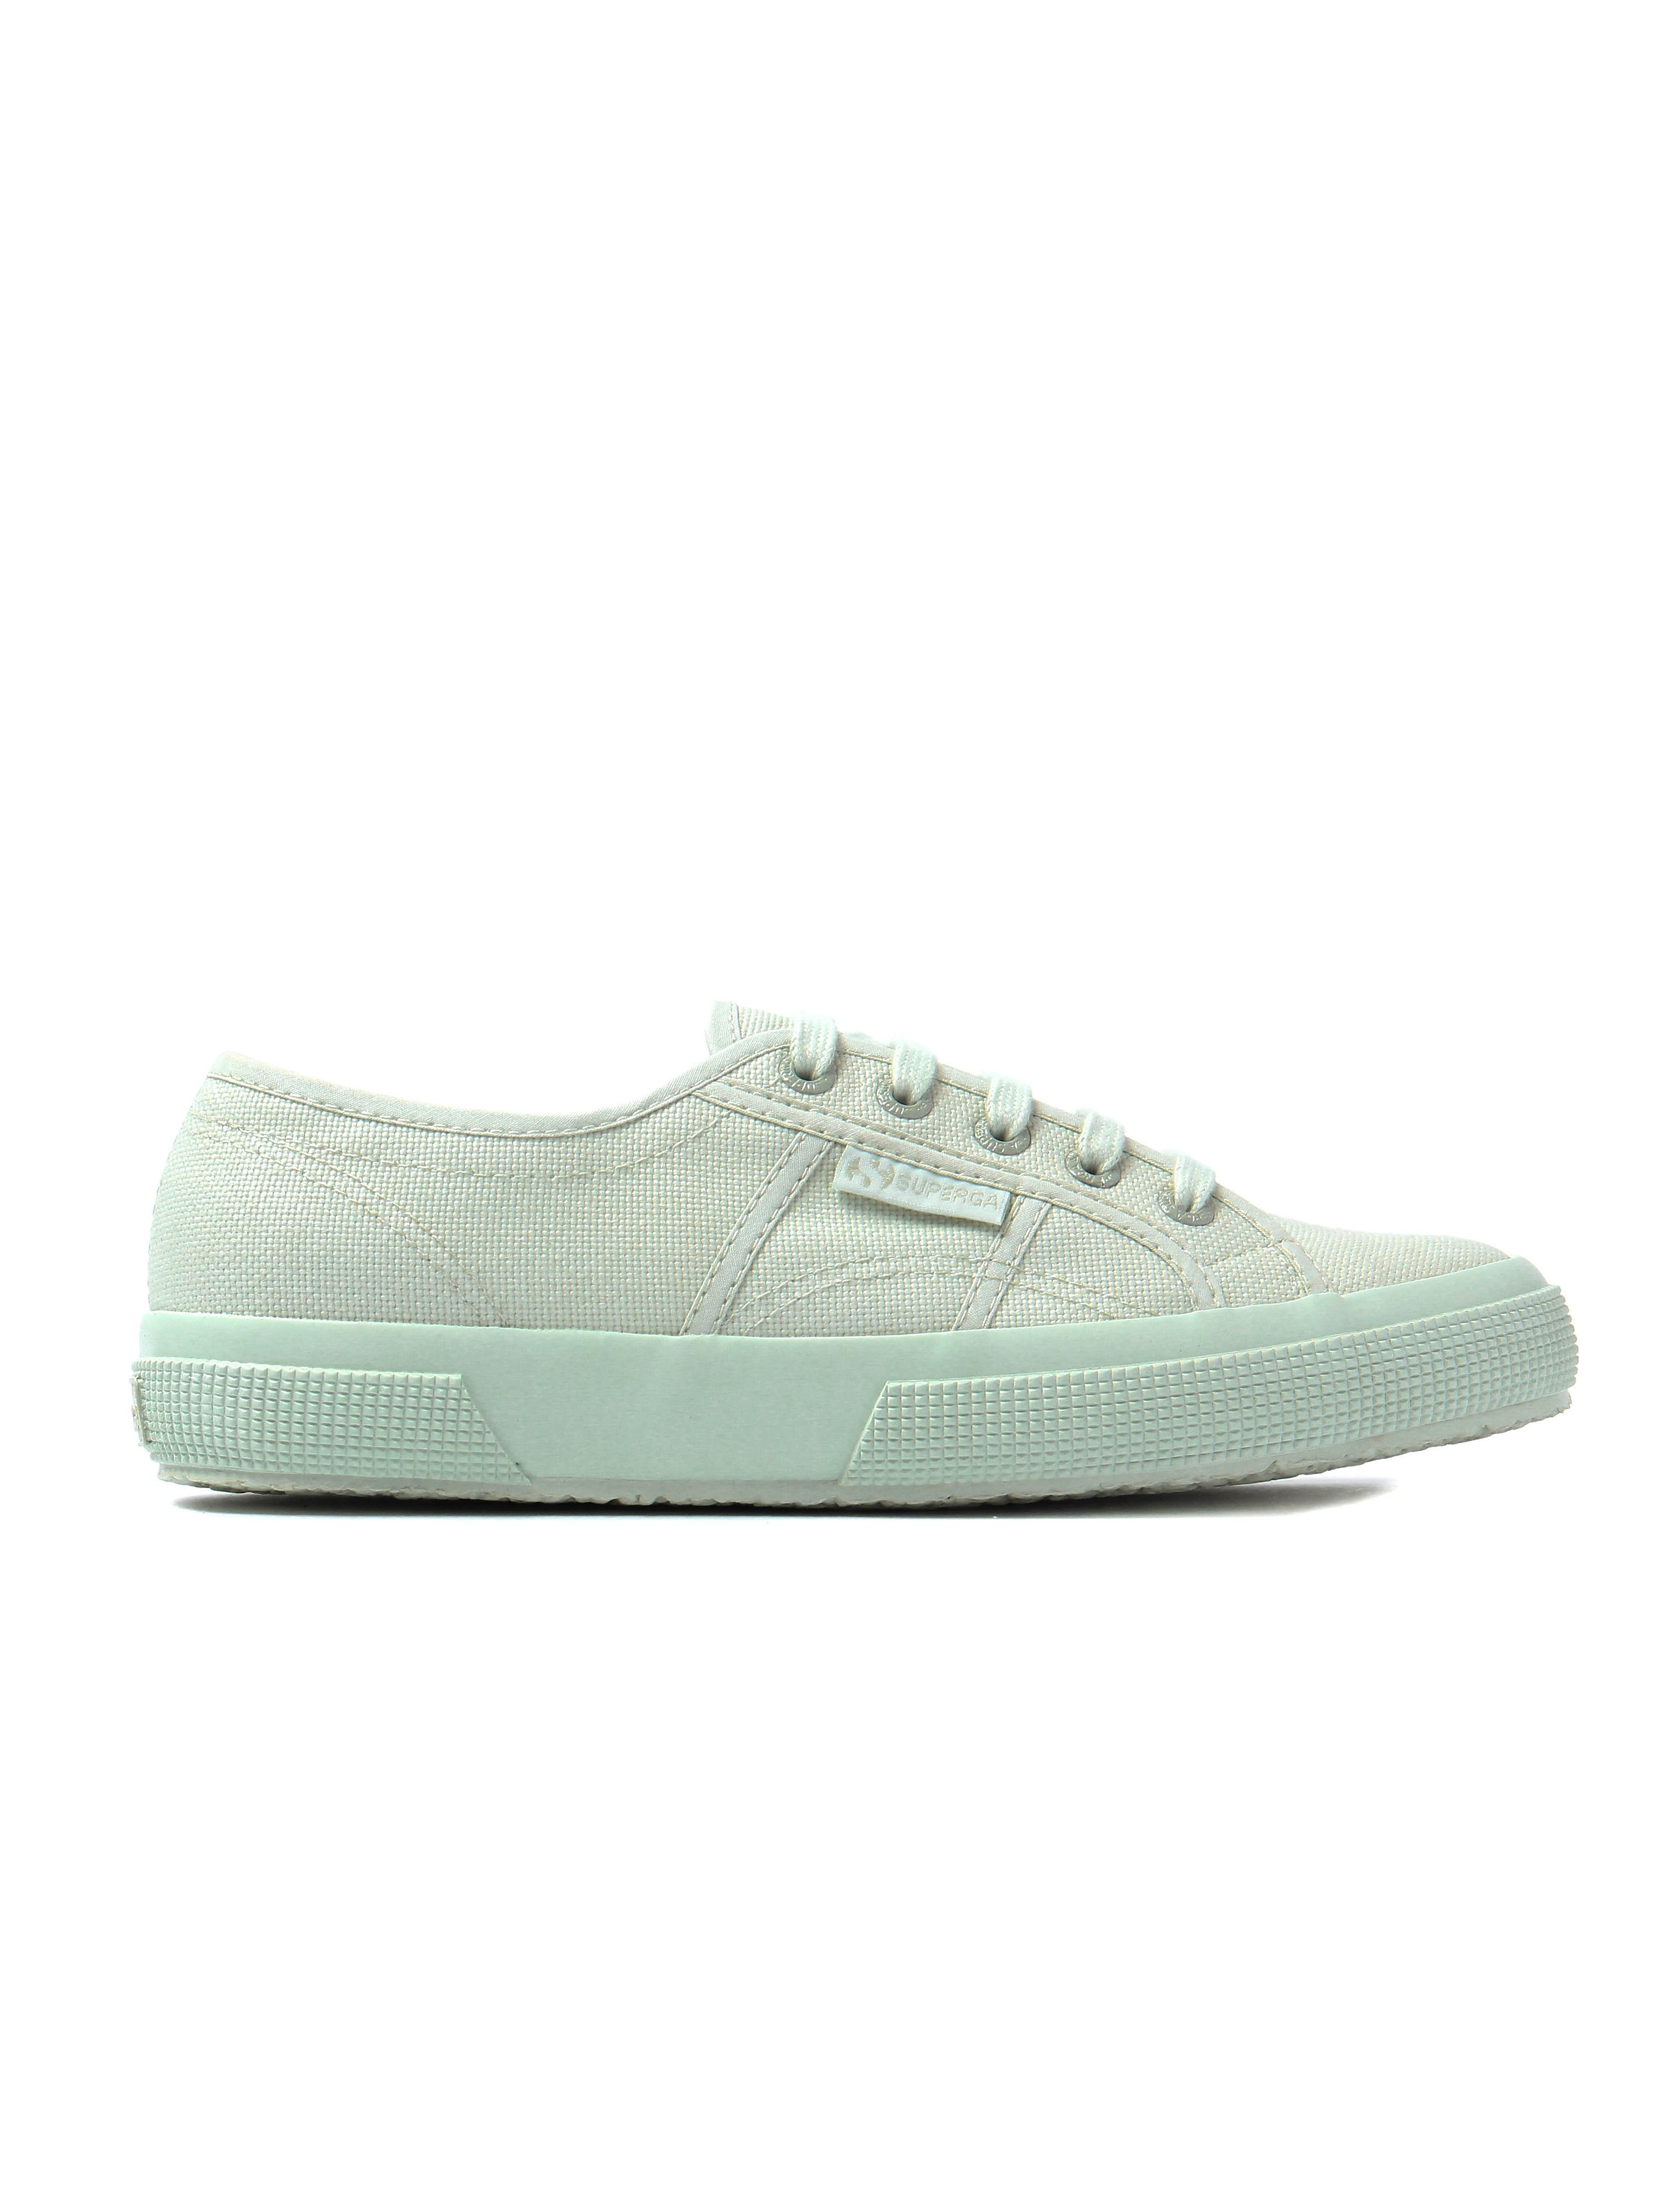 Superga Women's 2750 Cotu Classics Canvas Trainers - Total Mint